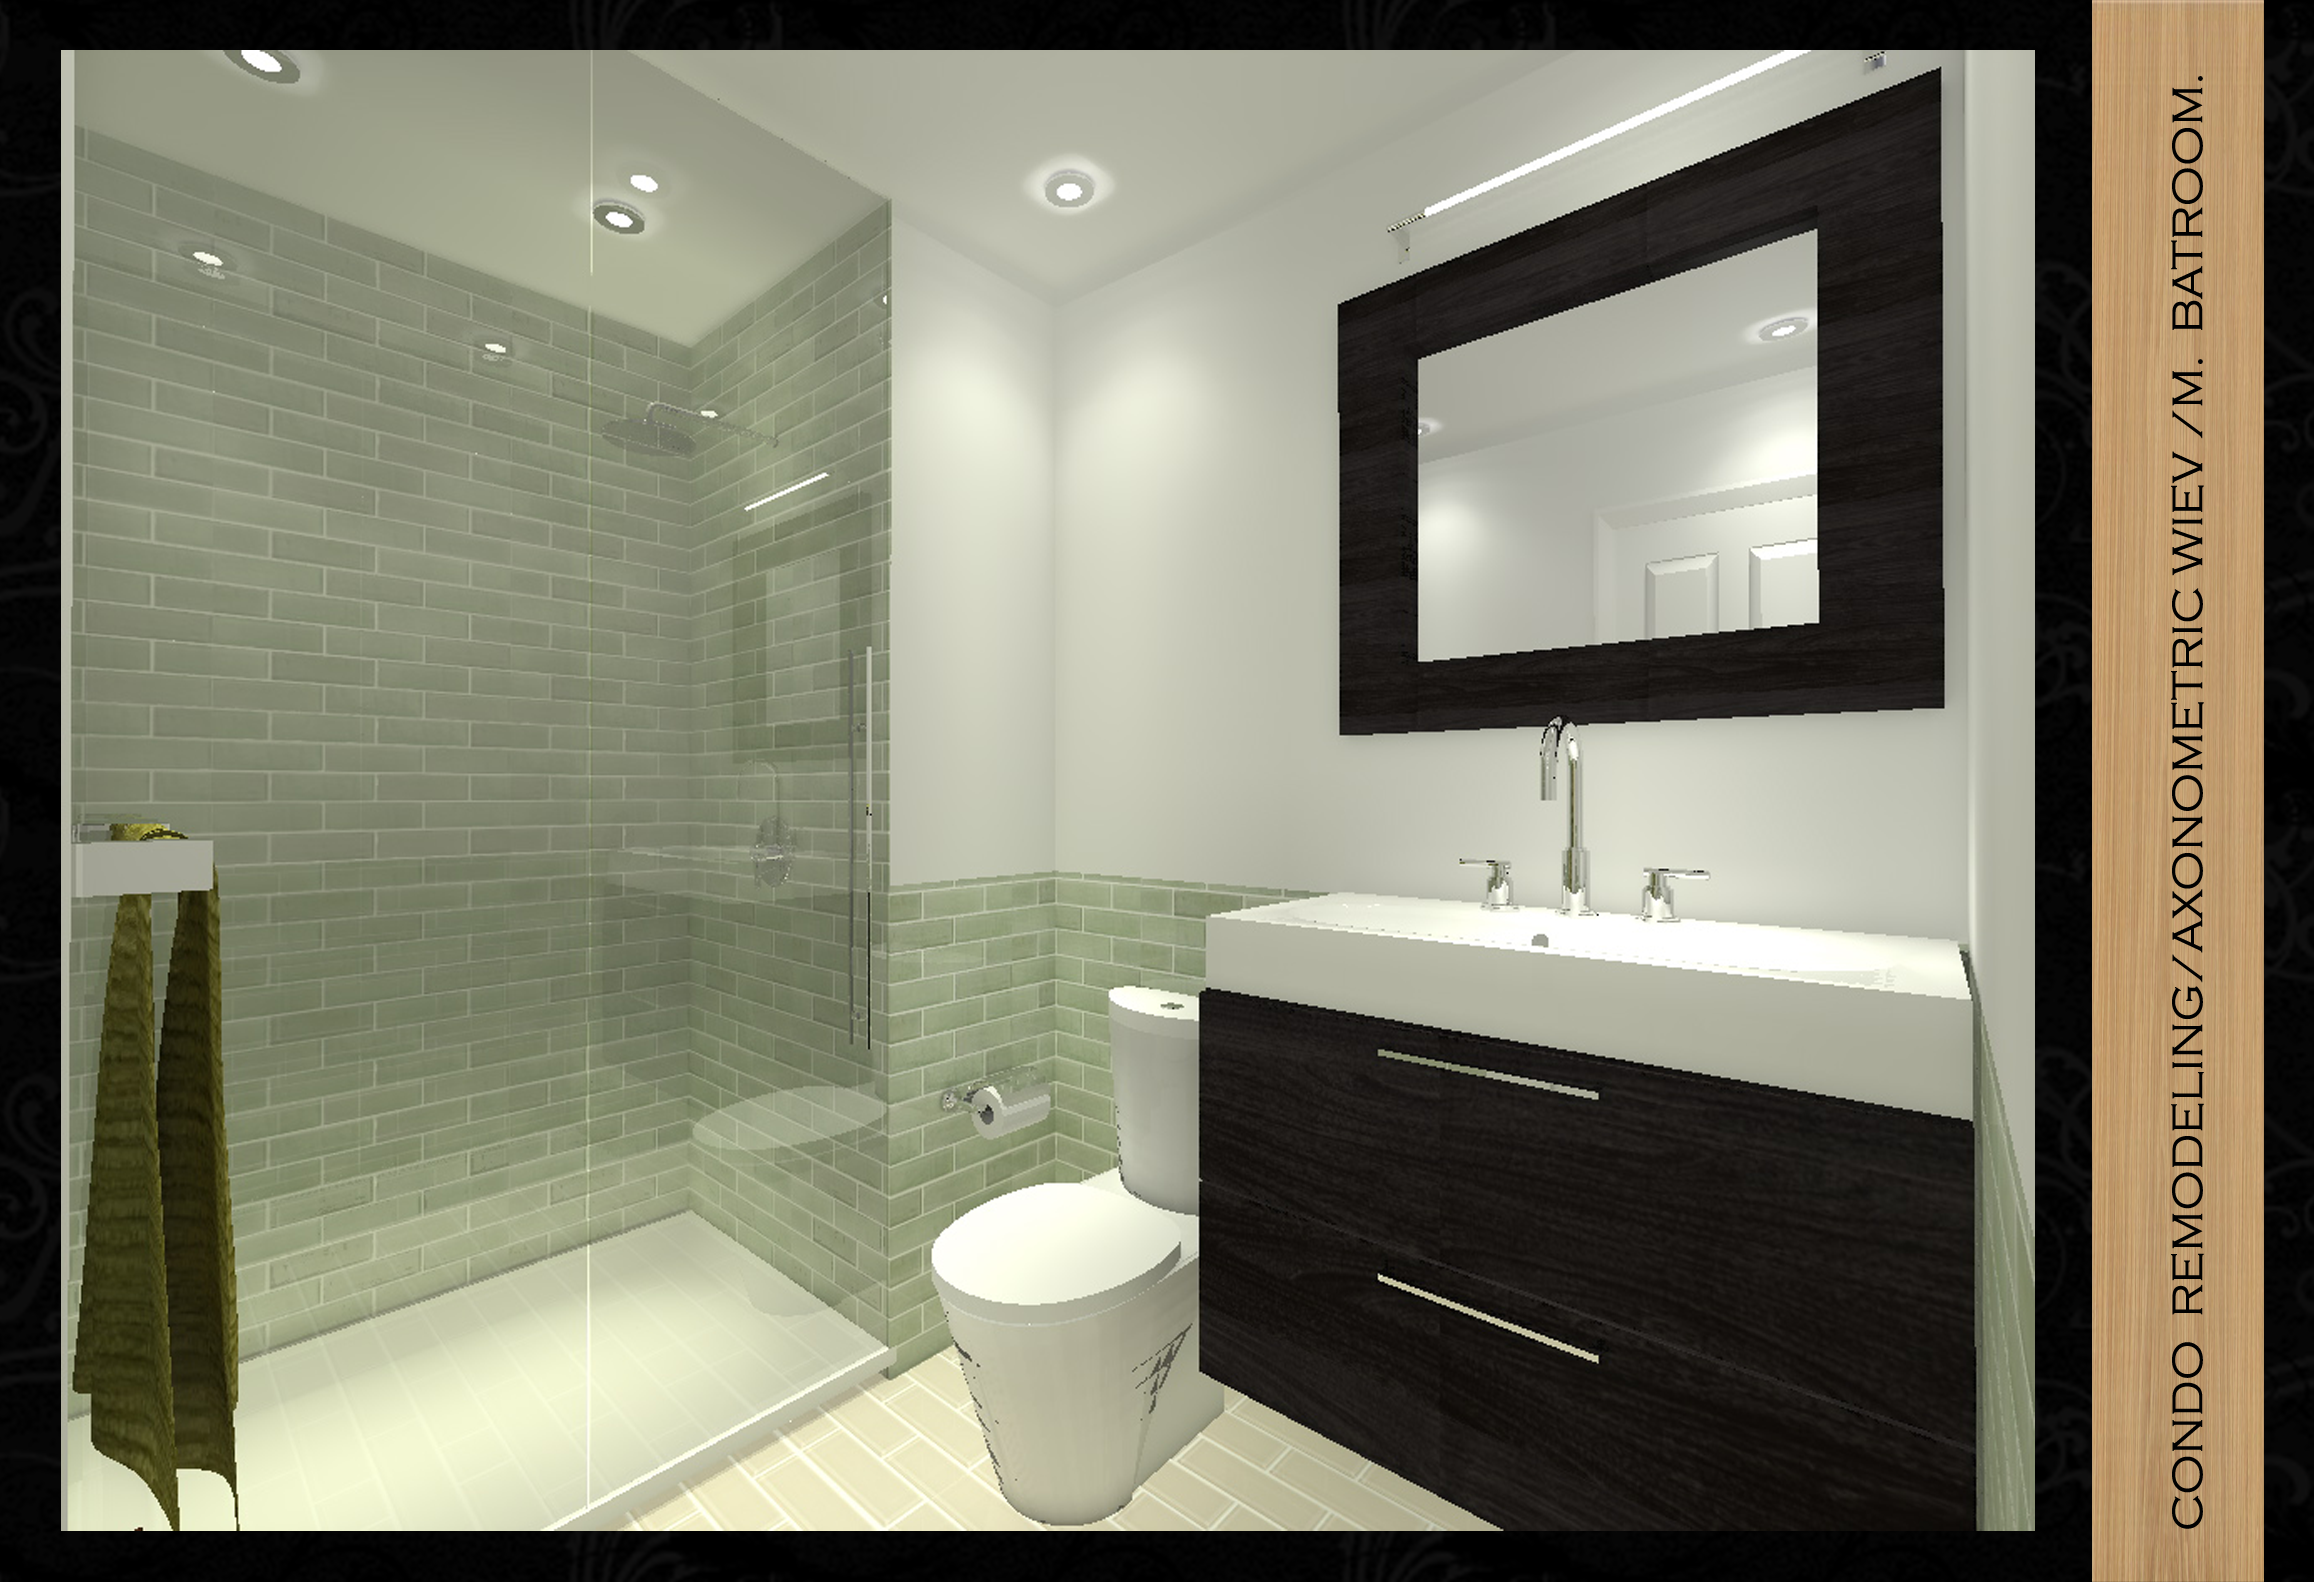 Viewdesignerproject projectkitchen design for Condo bathroom designs